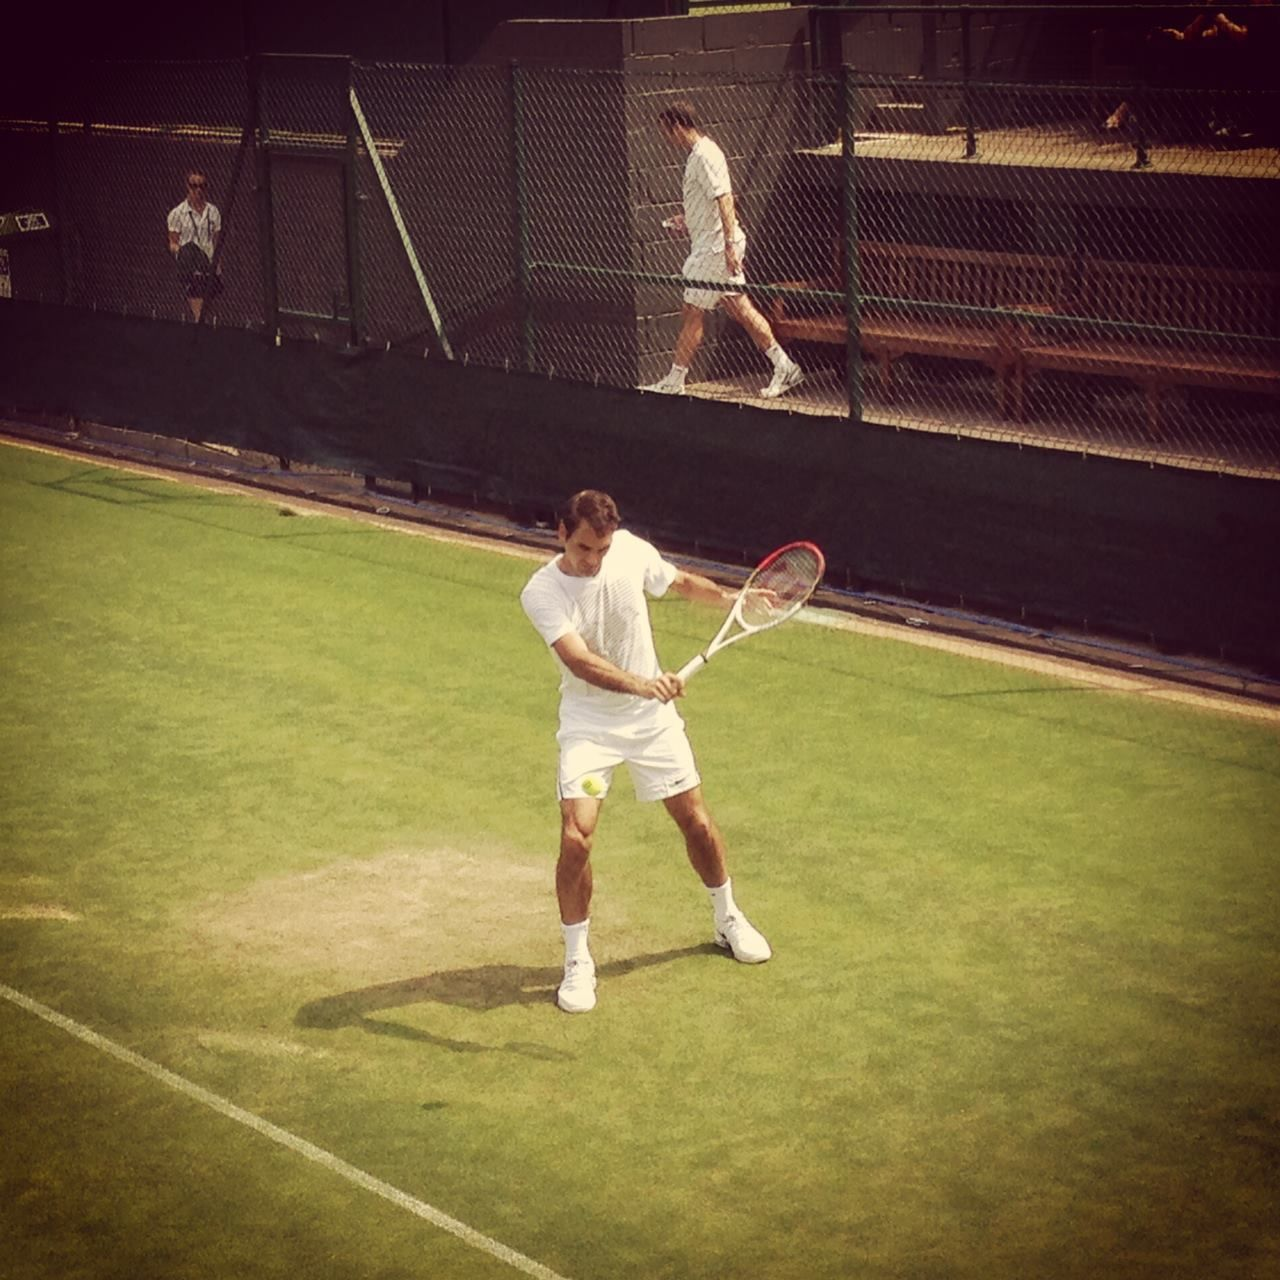 June 19, 2013:  The sun is shining at Wimbledon today and Roger Federer is out having a hit. In other words, it's a good day.